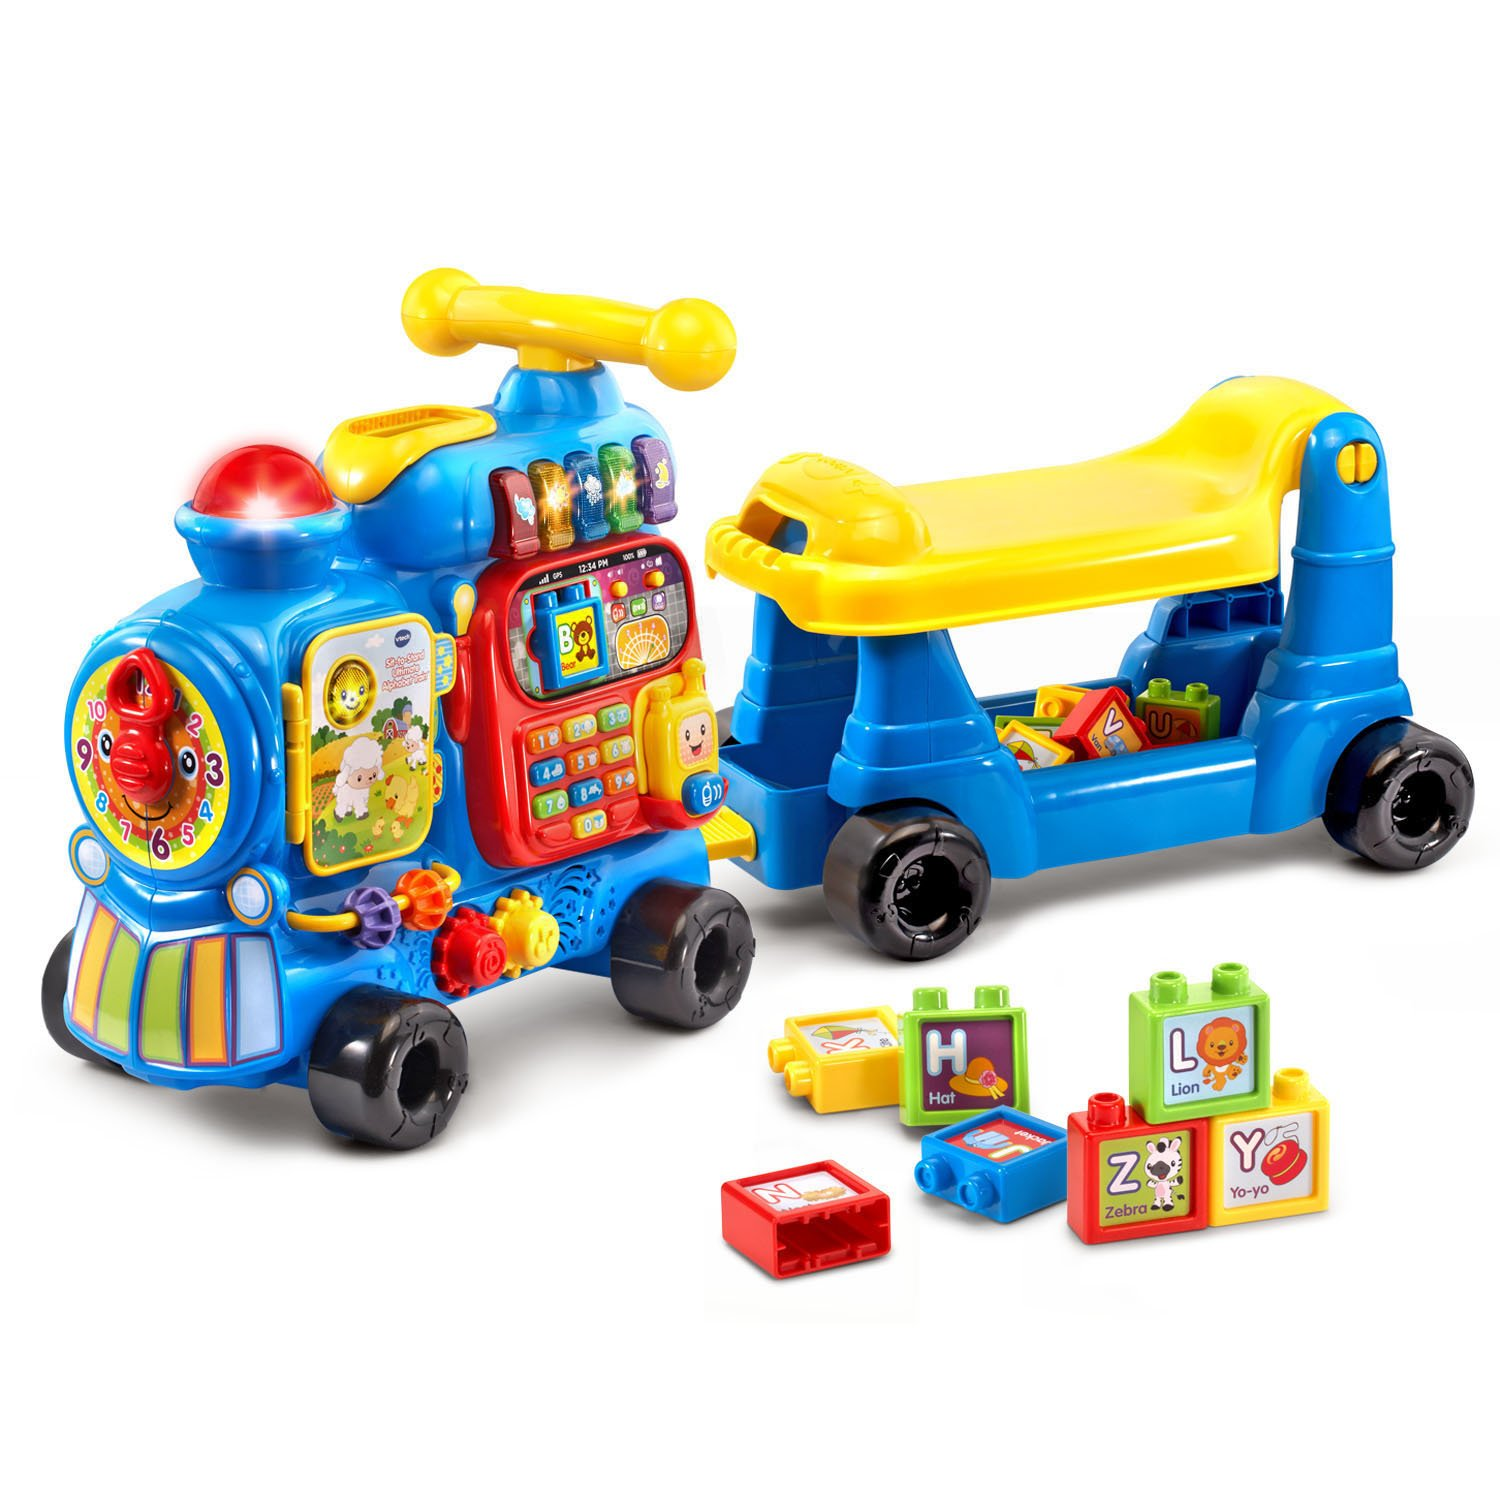 VTech Sit-to-Stand Ultimate Alphabet Train Amazon Exclusive, Blue by VTech (Image #2)